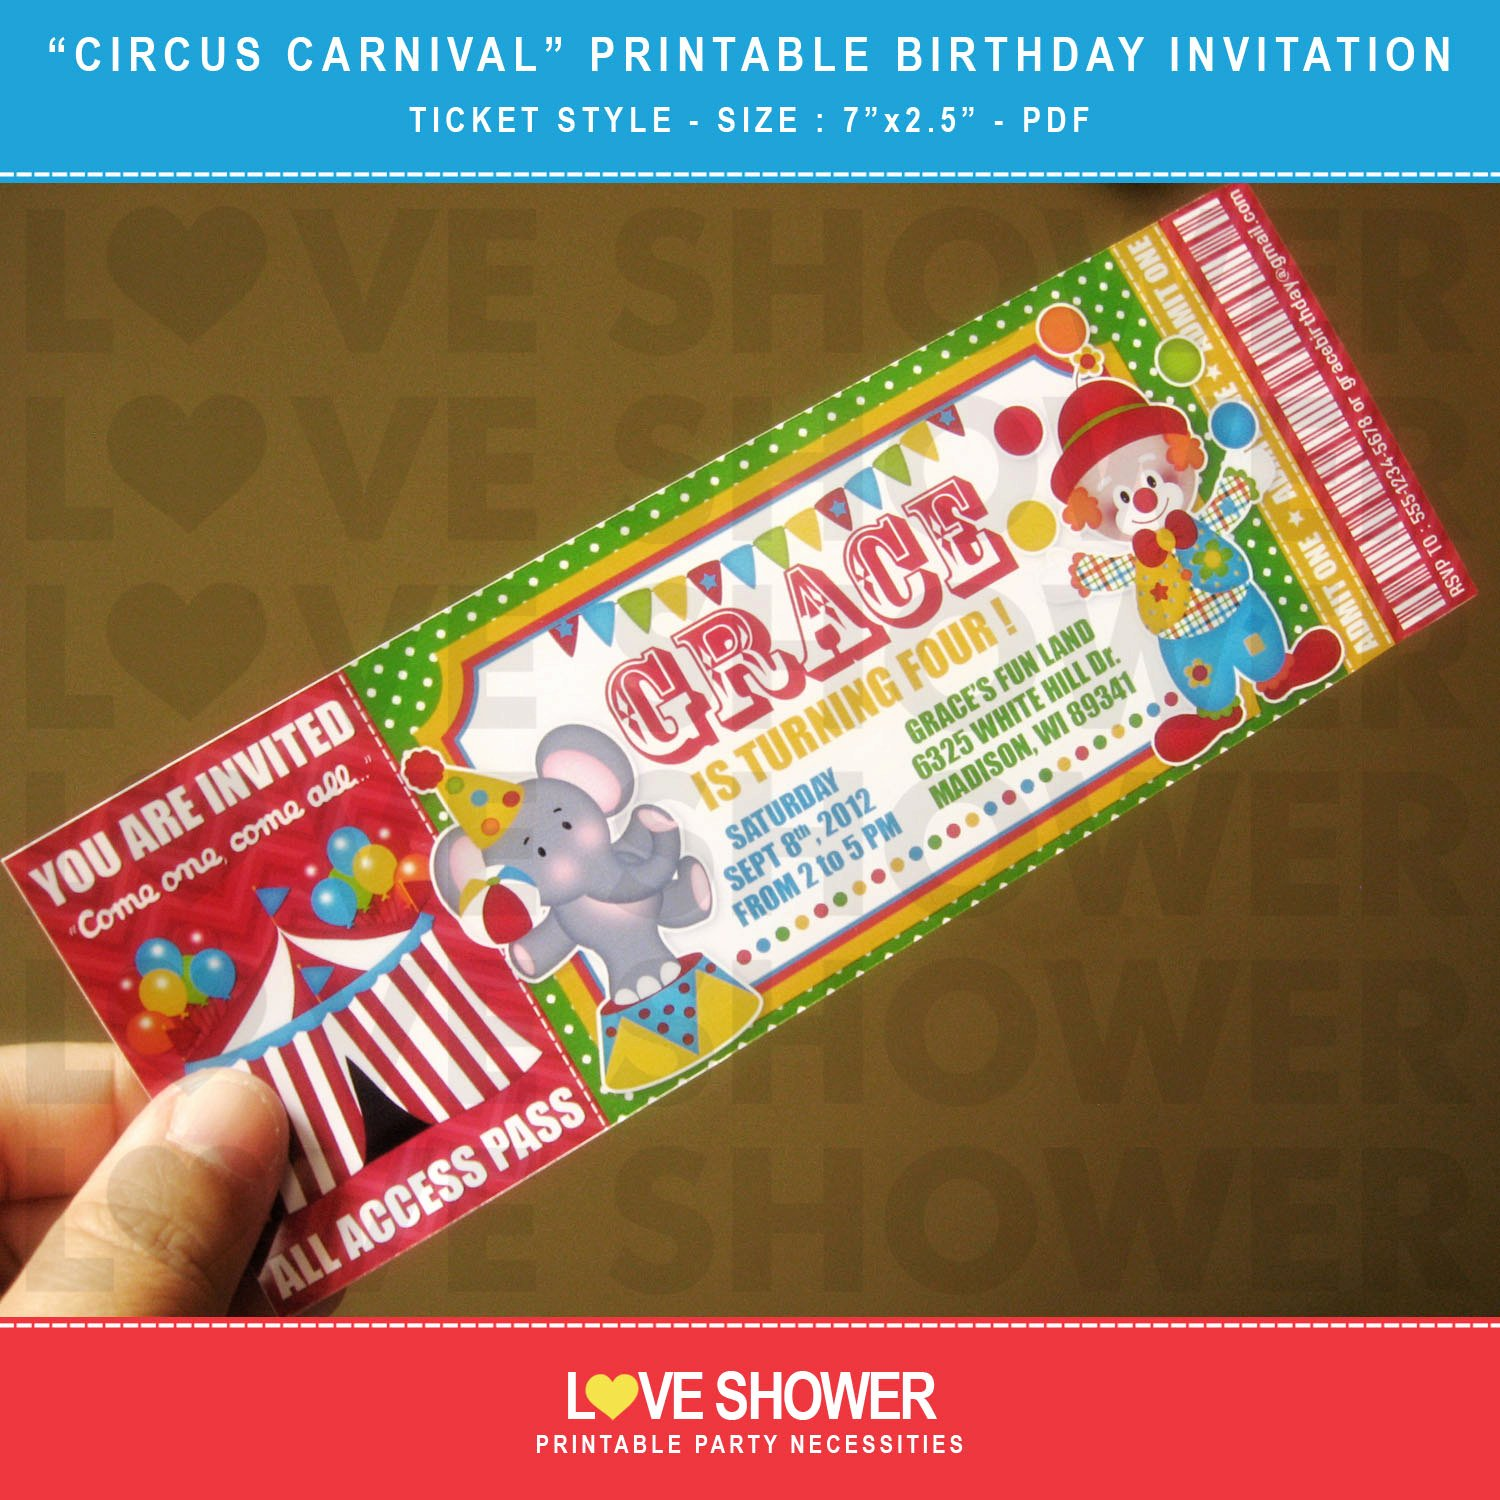 Carnival Ticket Birthday Invitations Awesome Circus Carnival Printable Birthday Invitation Ticket Style